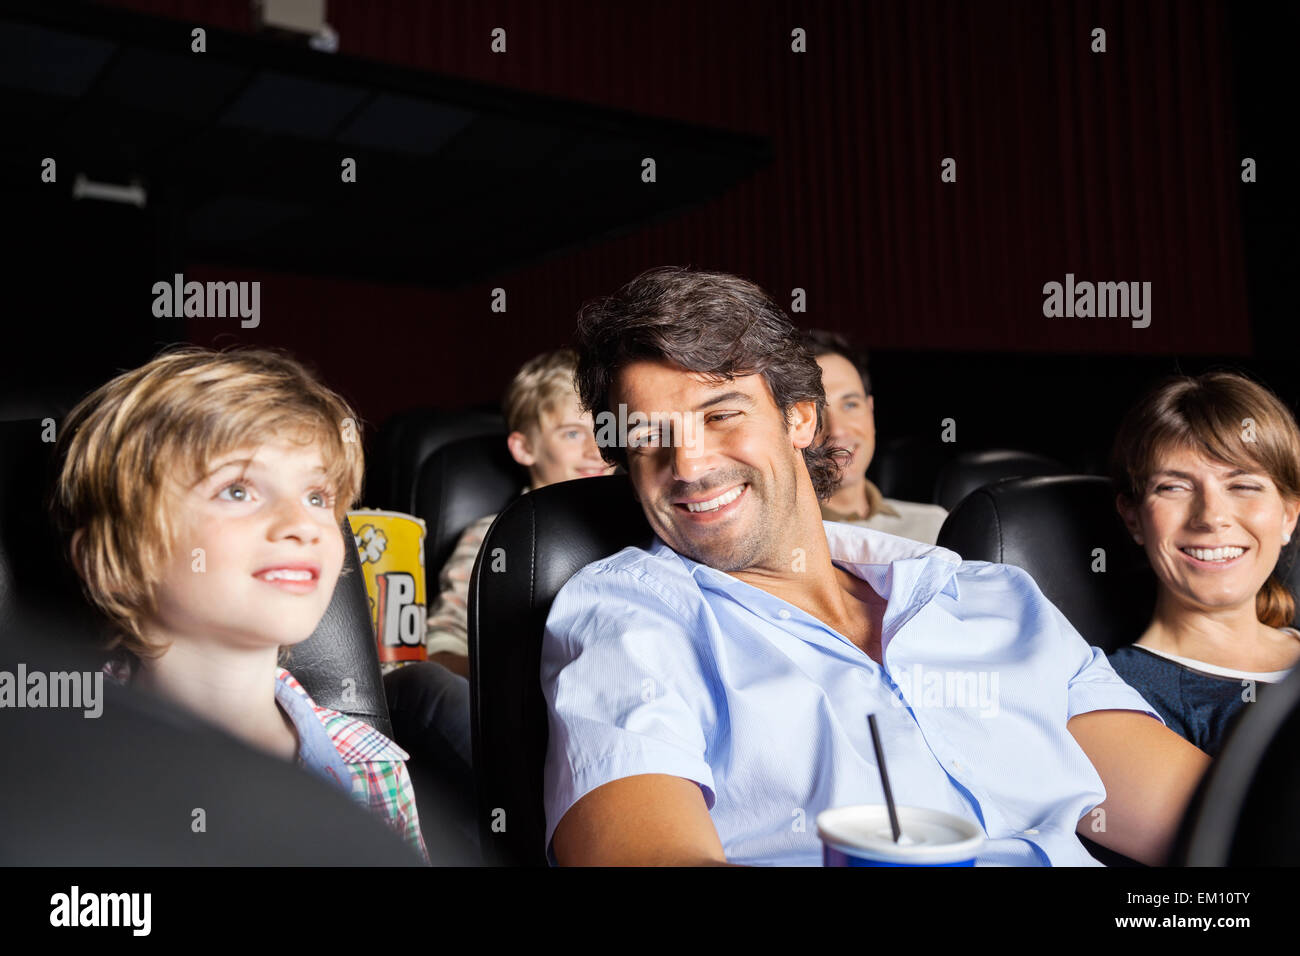 Happy Family Watching Movie In Theater - Stock Image